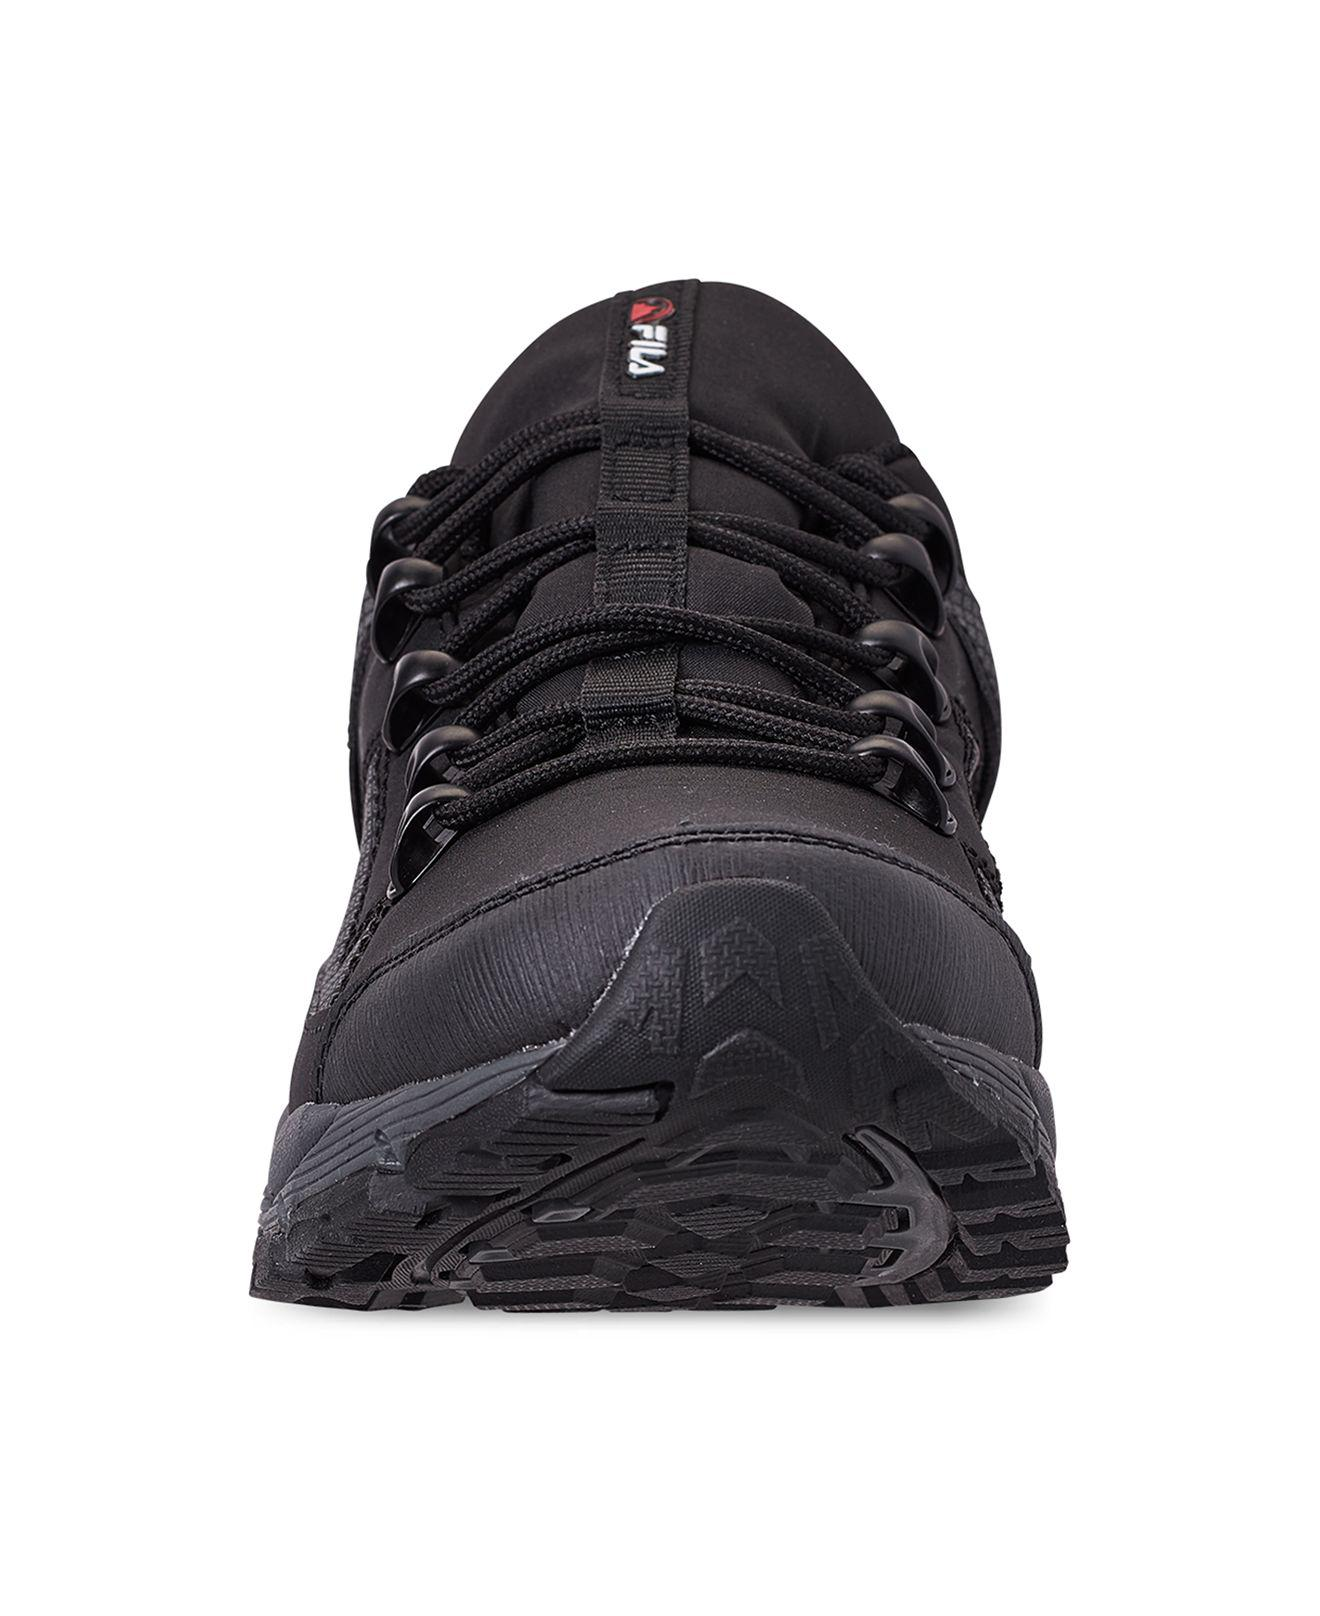 d1a5066437 Fila - Black Switchback 2 Hiking Sneakerboots From Finish Line for Men -  Lyst. View fullscreen